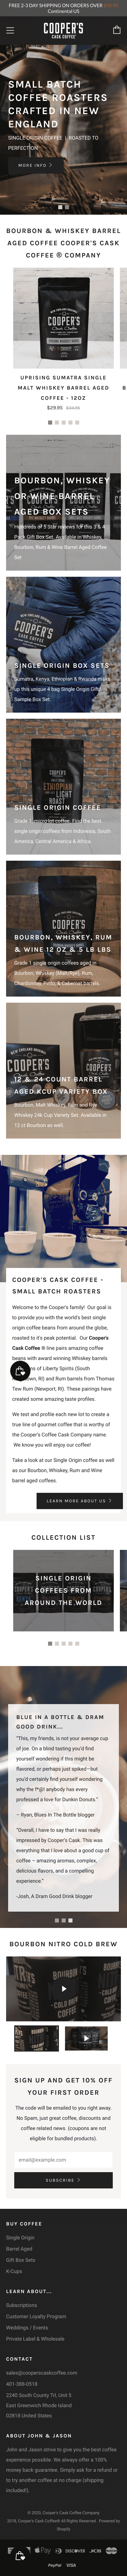 Coopers Cask Coffee Coupon